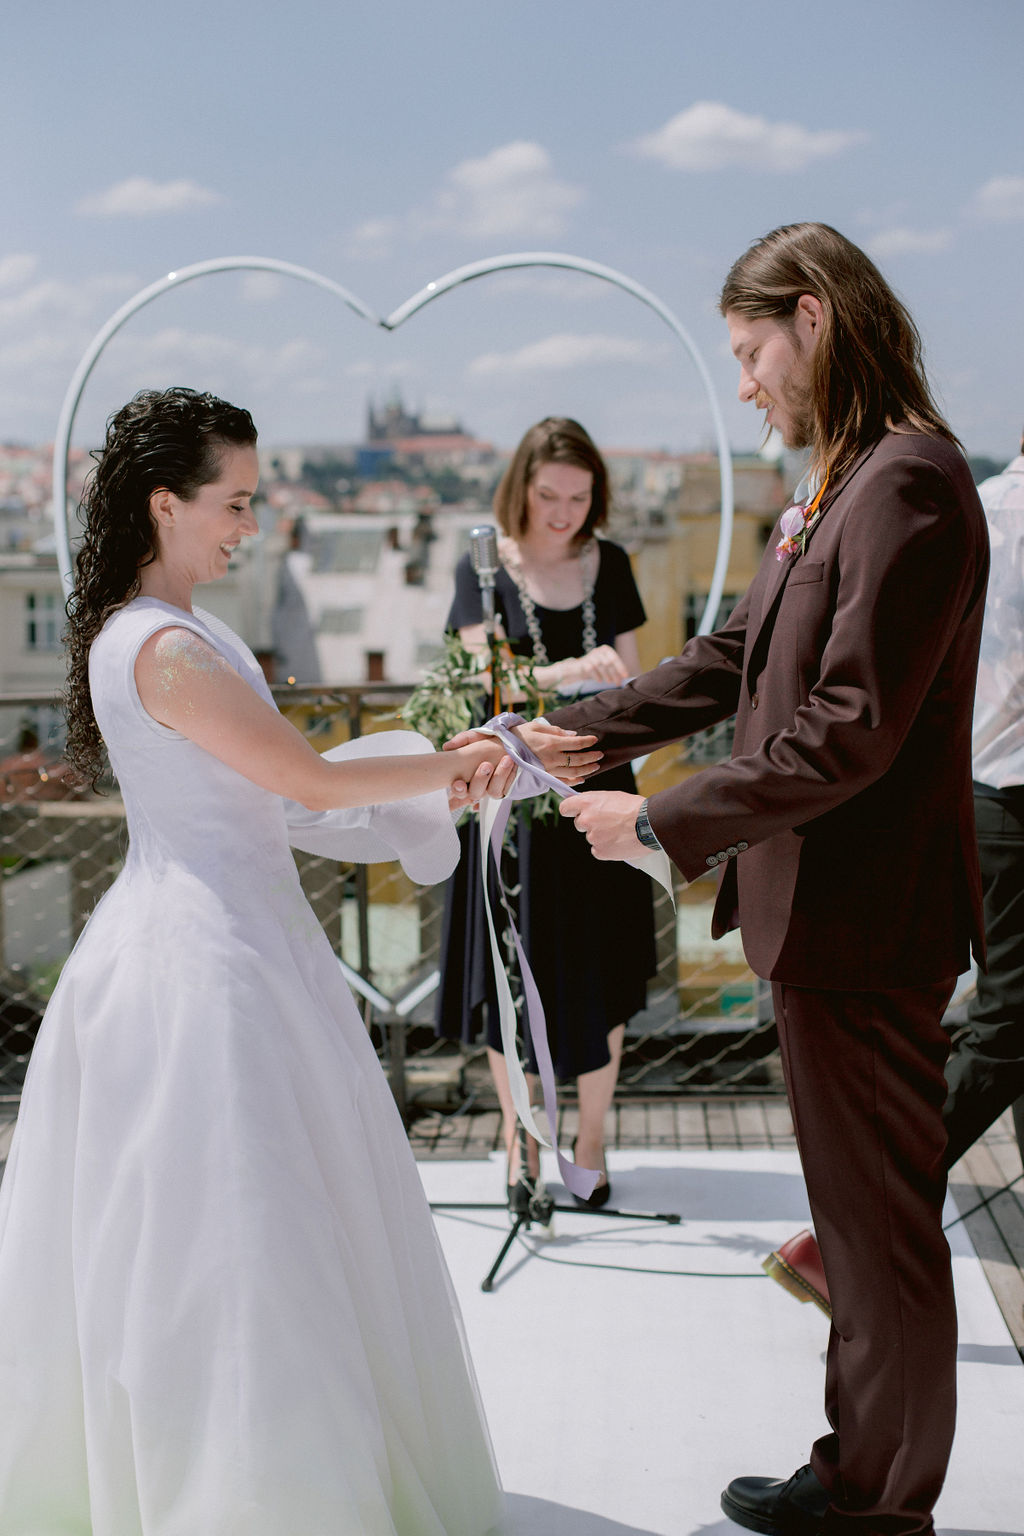 Scottish hand fasting | Svatba Střecha Lucerny | Prague Rooftop Wedding by Ceranna Photography